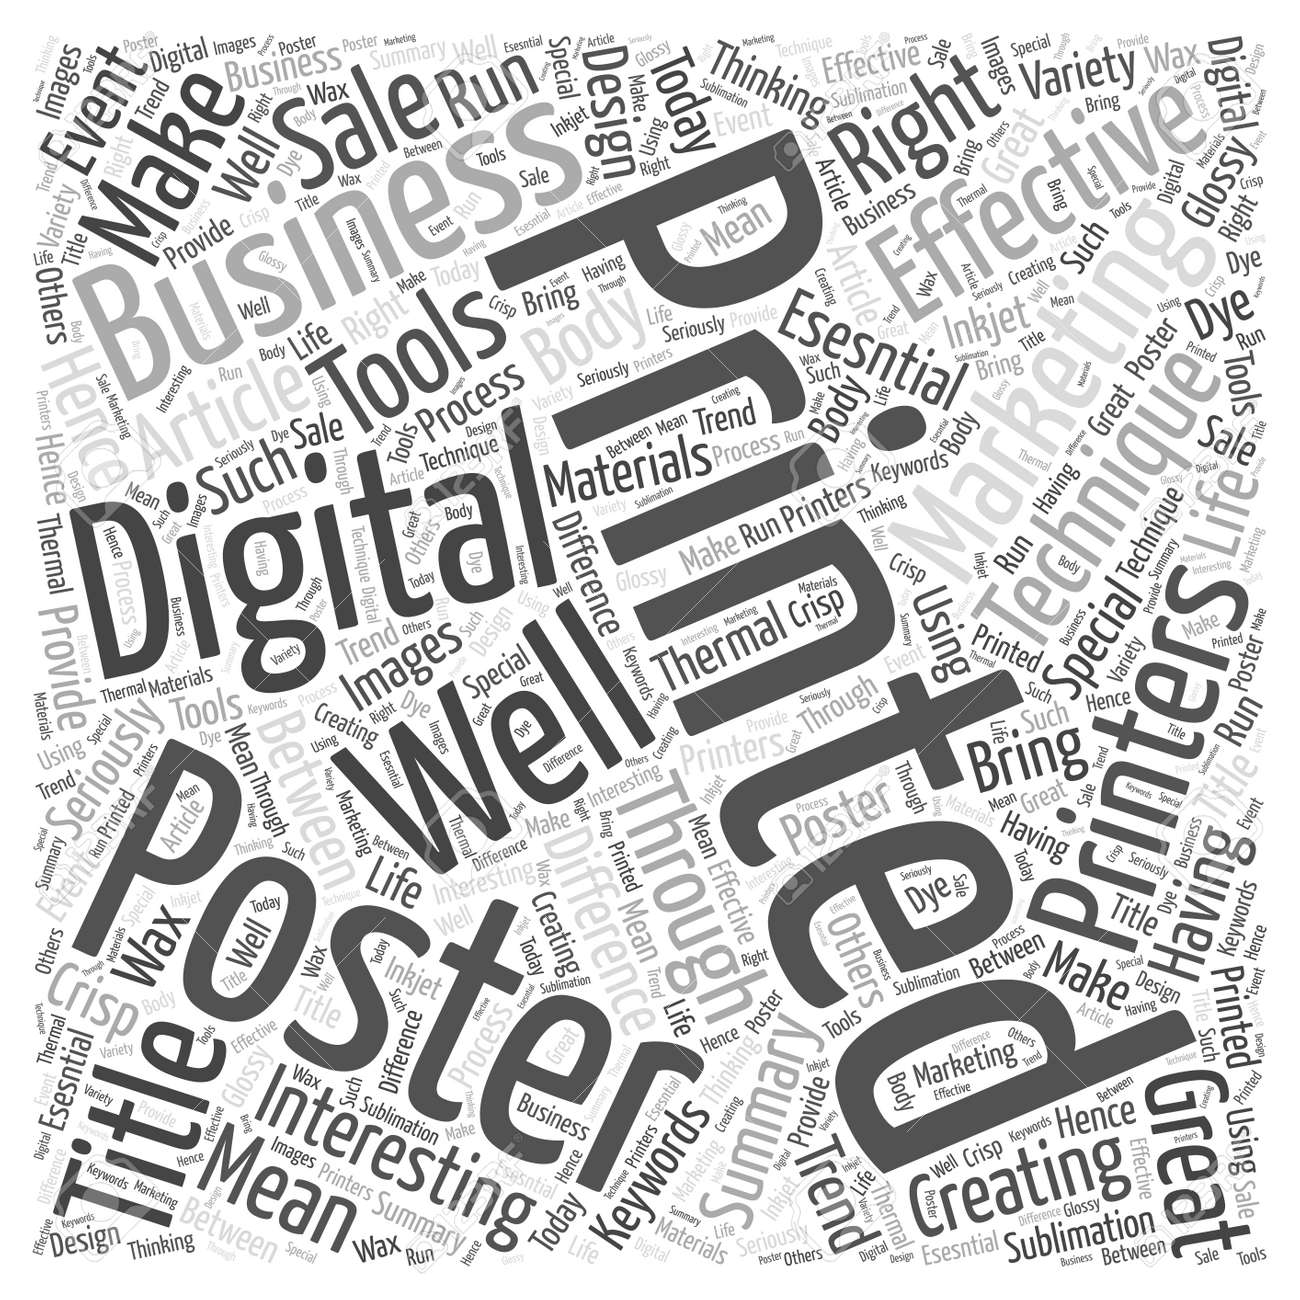 make your business interesting through posters word cloud concept